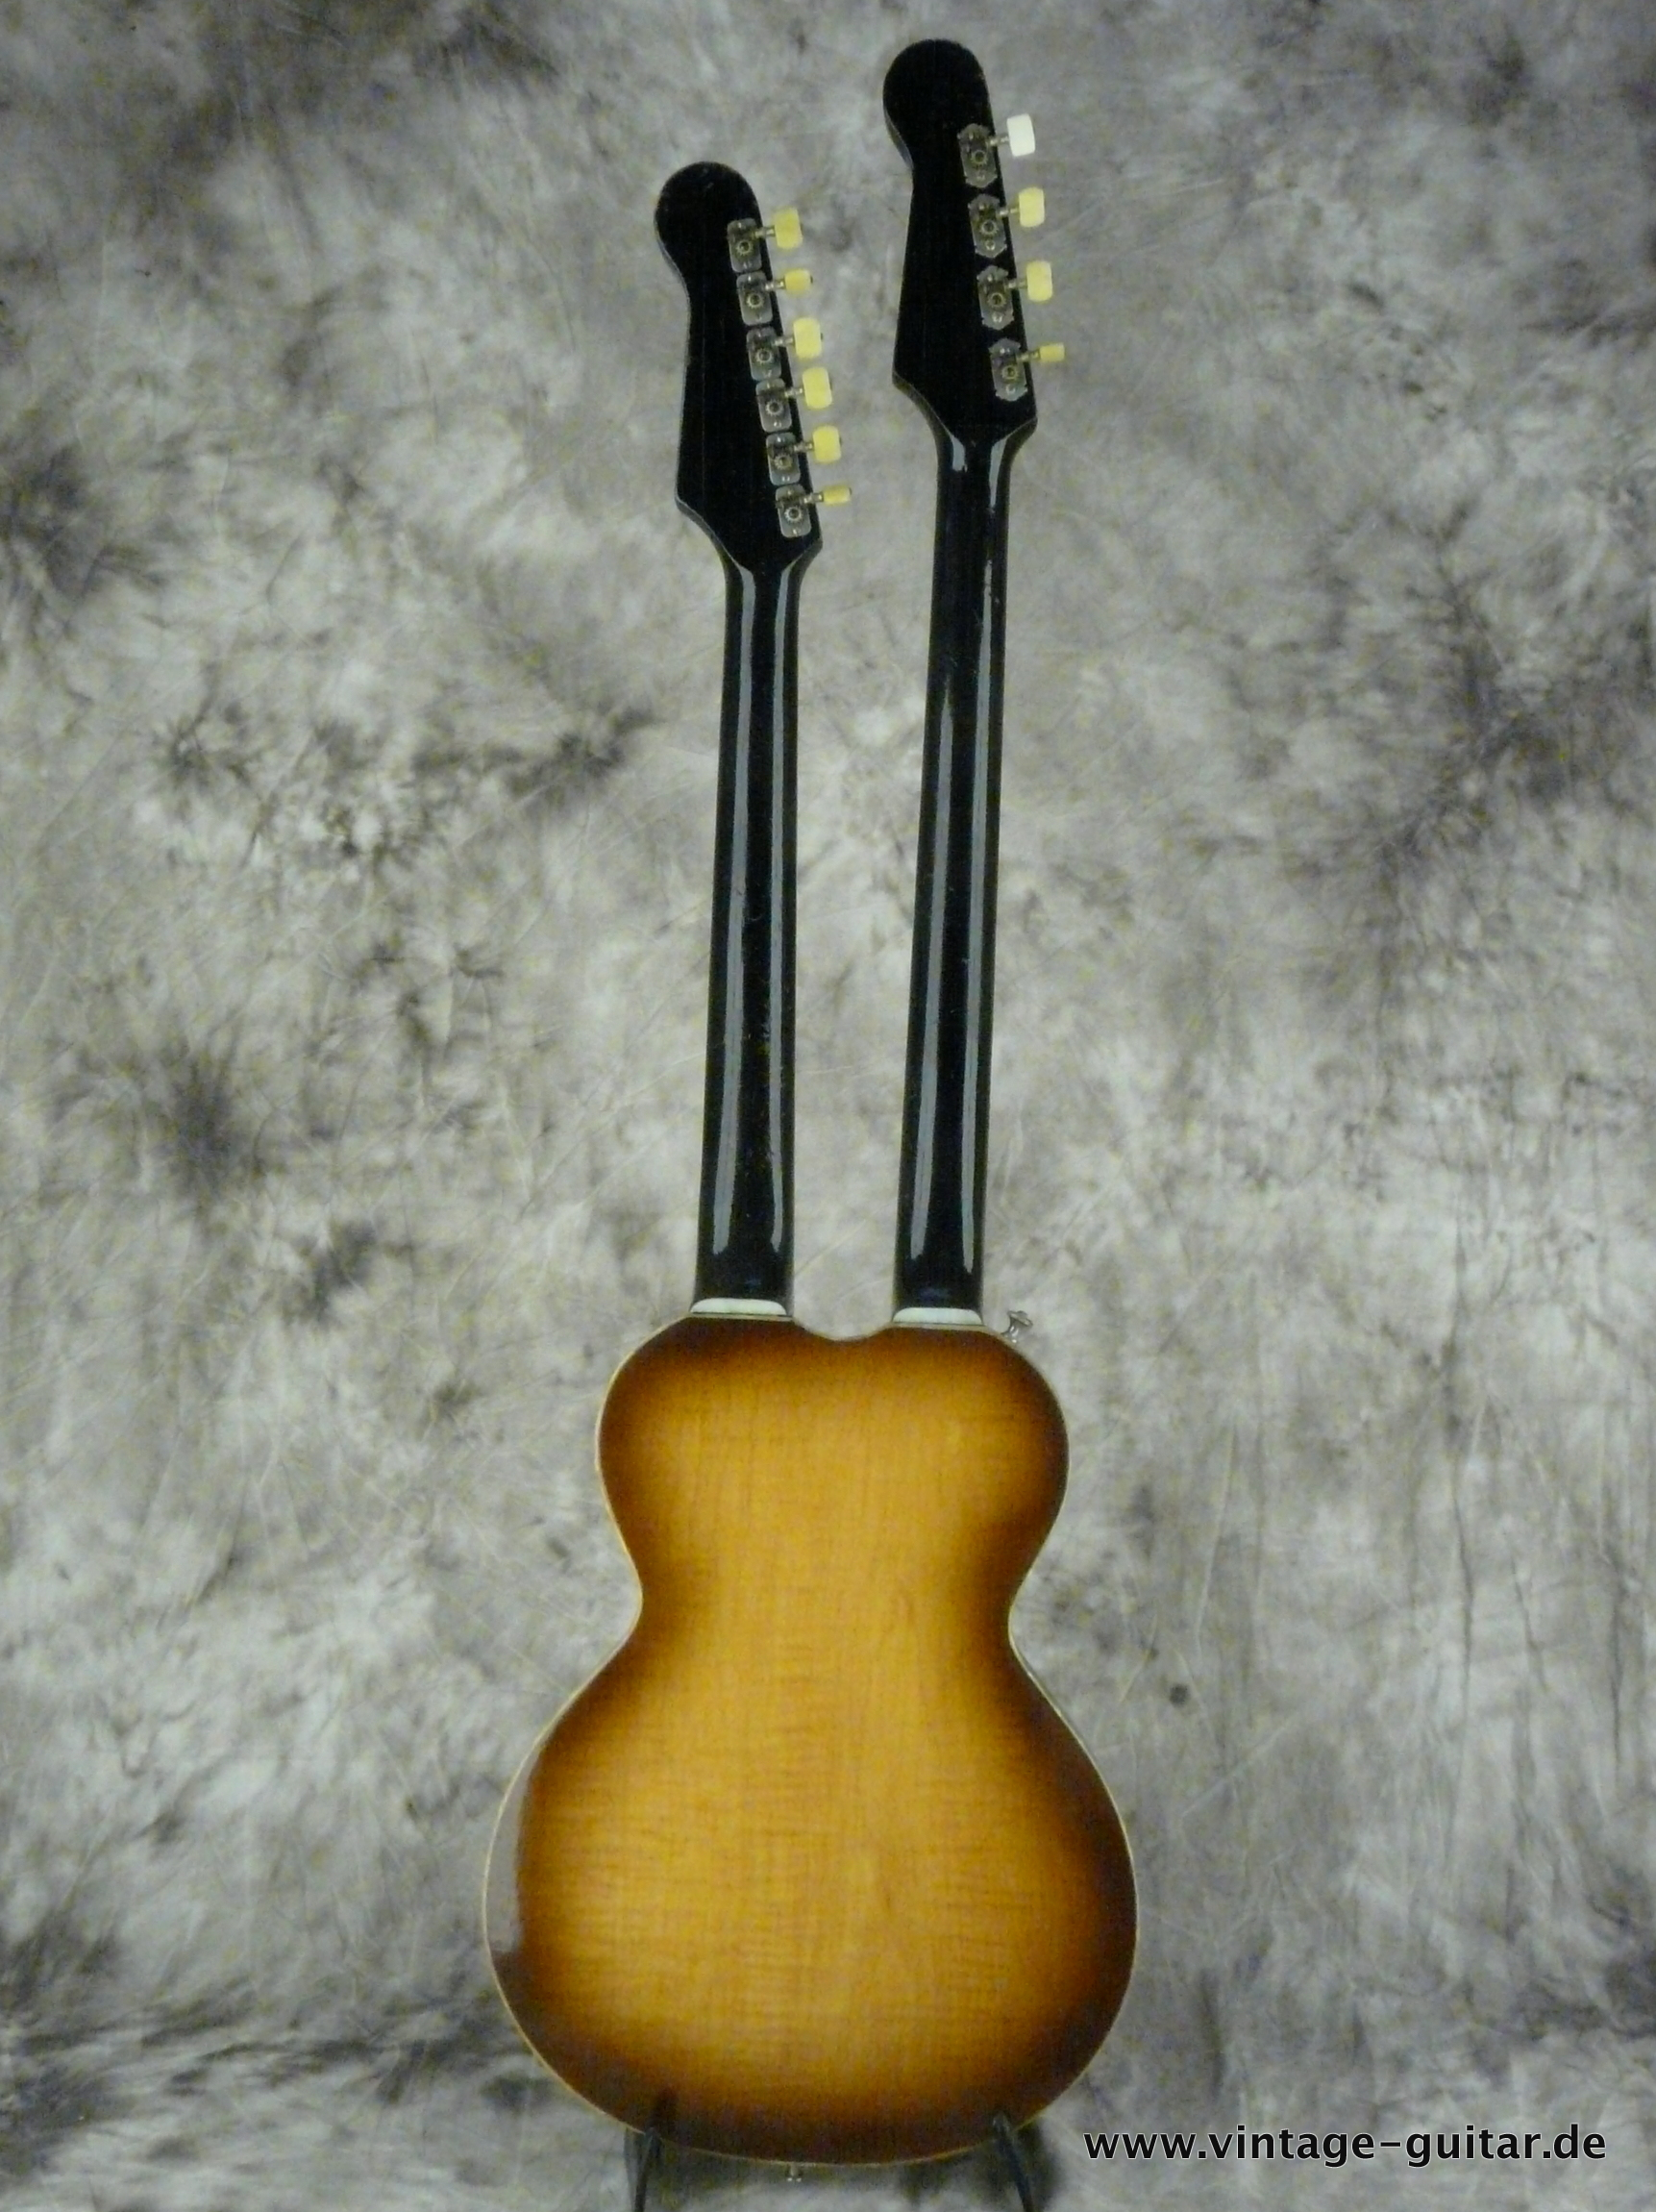 img/vintage/2648/Hofner-Double-Neck-Guitar-and-Bass-Model-191-003.JPG